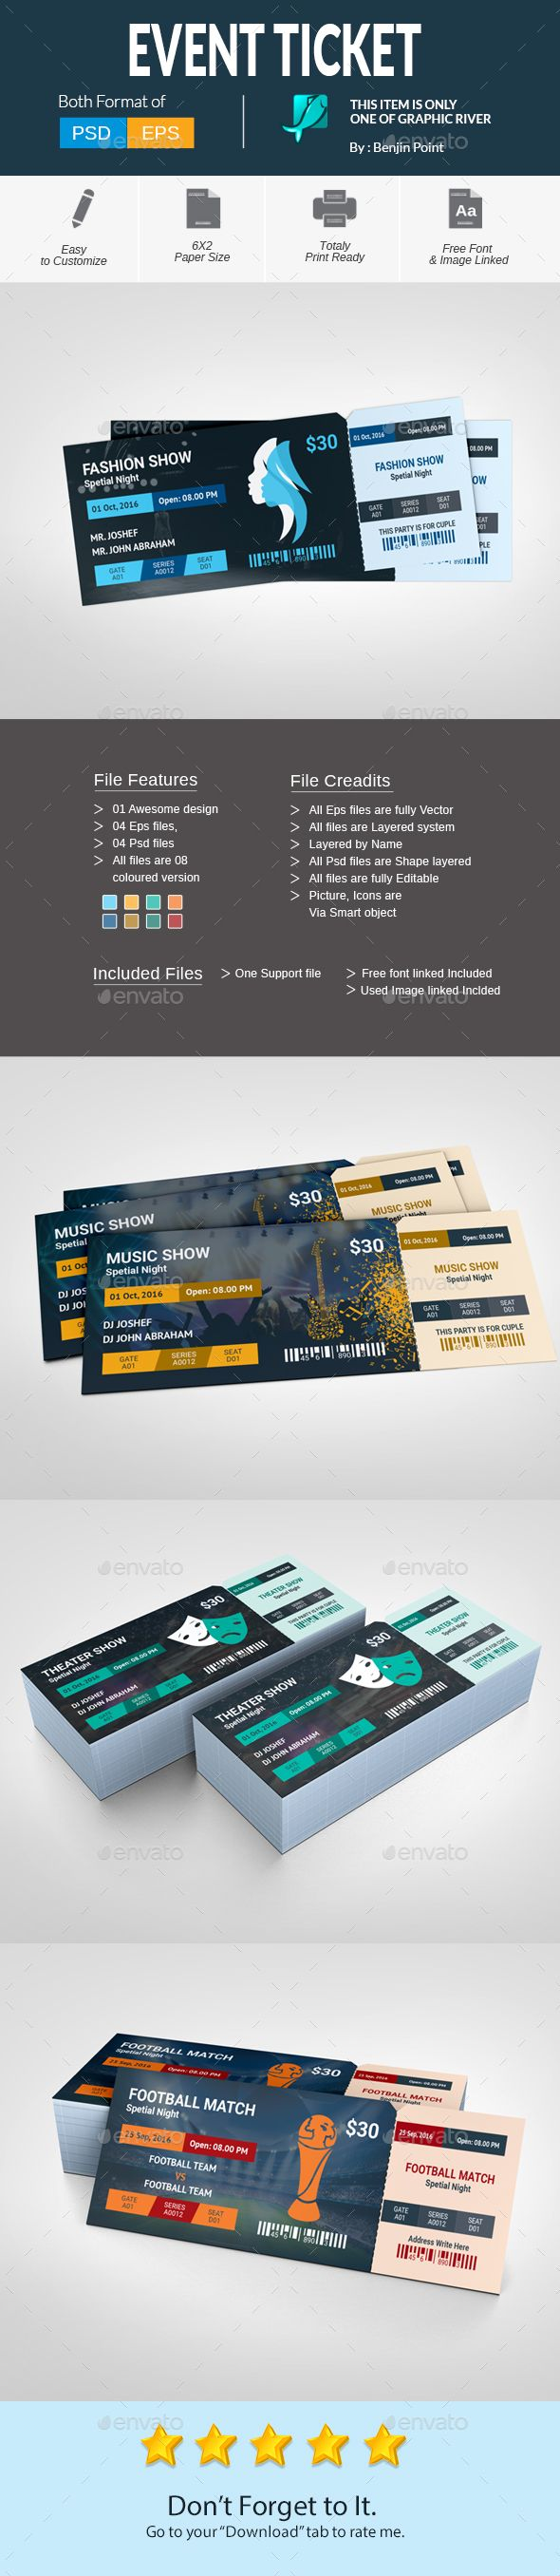 Event Ticket  — PSD Template #nightclub #club ticket • Download ➝ https://graphicriver.net/item/event-ticket/18100746?ref=pxcr